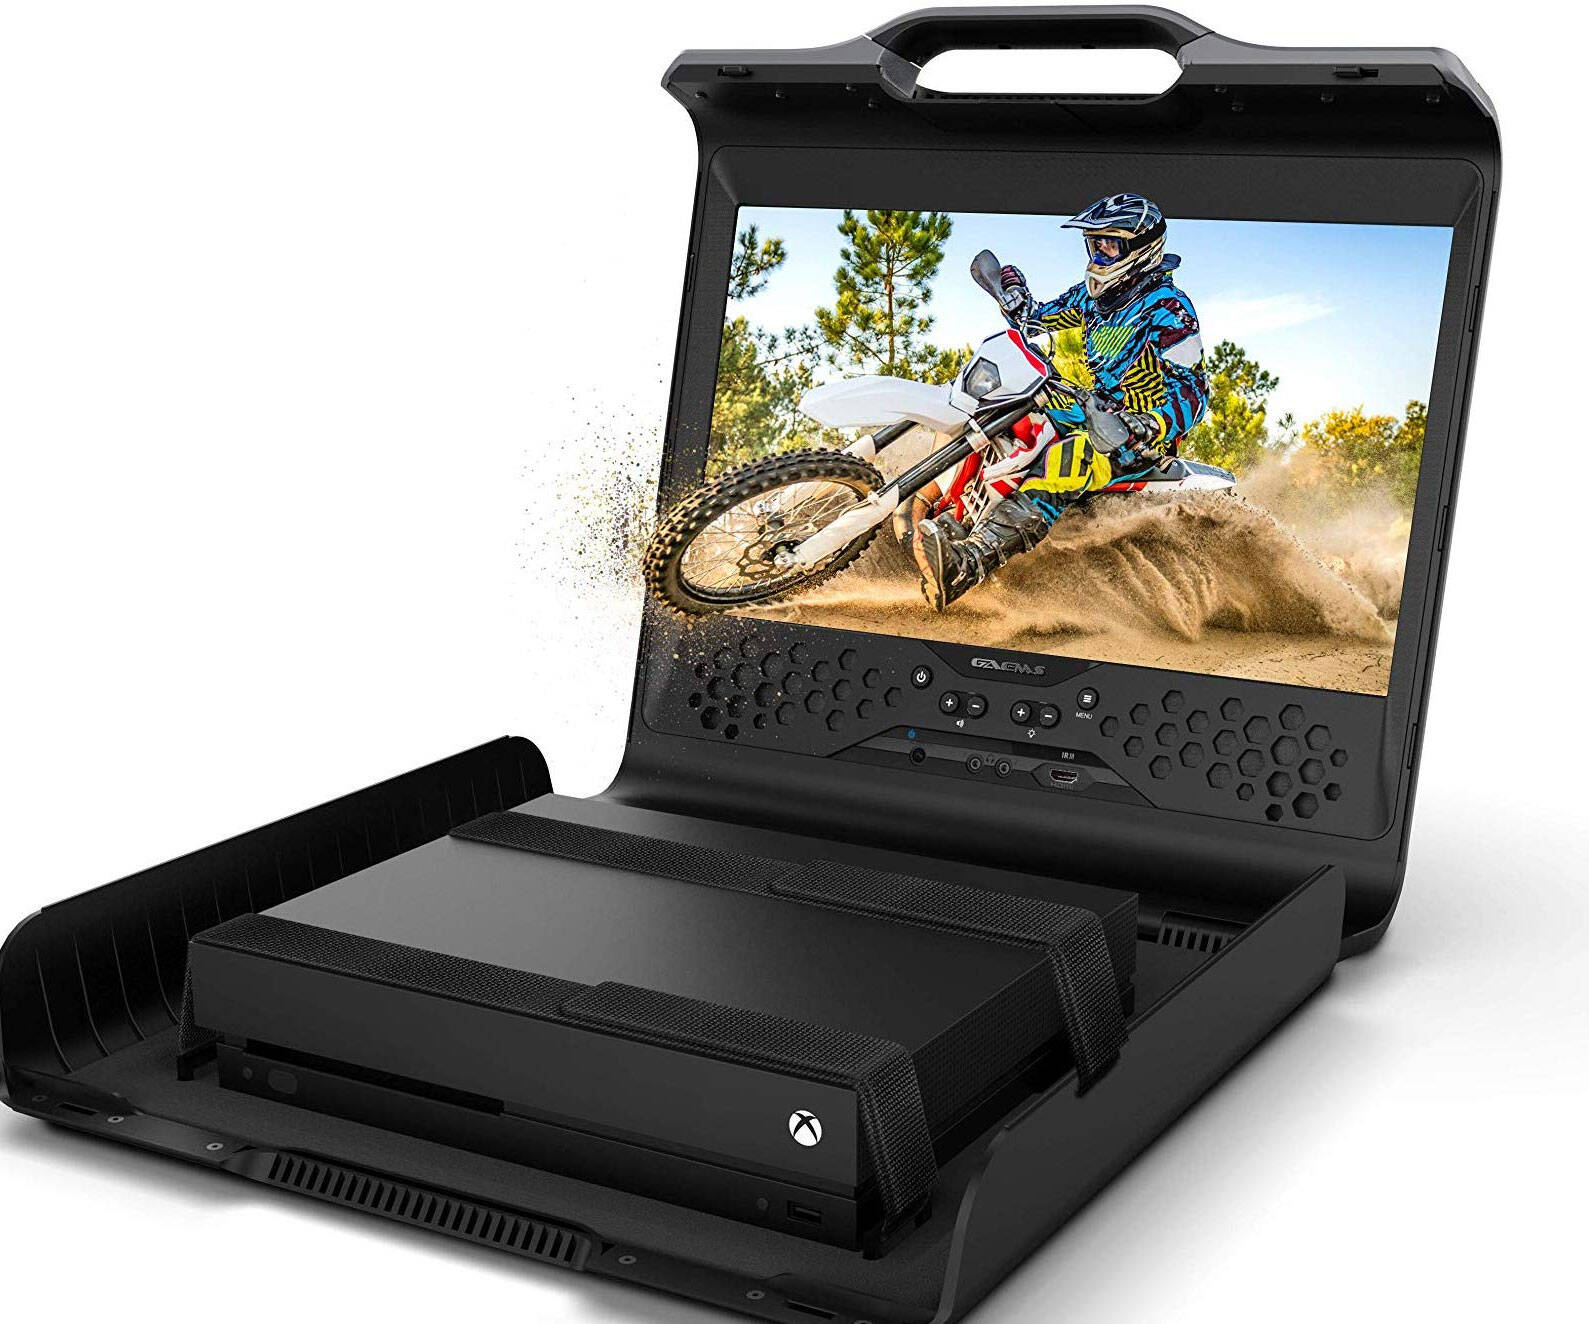 Sentinel Portable Gaming Monitor - http://coolthings.us